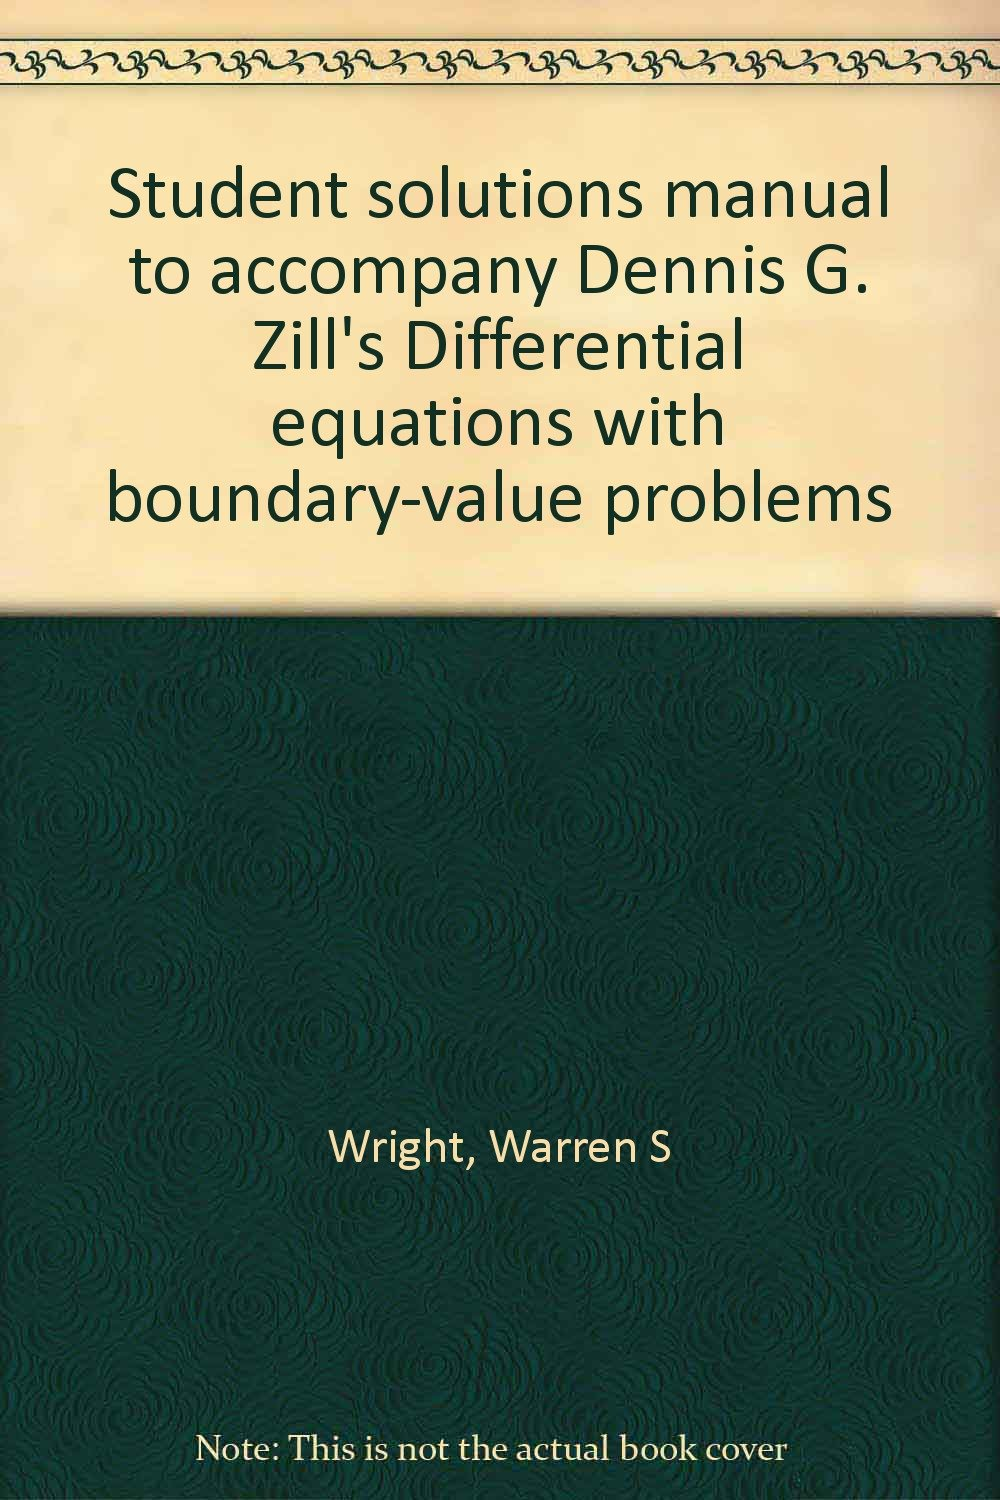 Student solutions manual to accompany Dennis G. Zill's Differential  equations with boundary-value problems: Warren S Wright: 9780871509185:  Amazon.com: ...